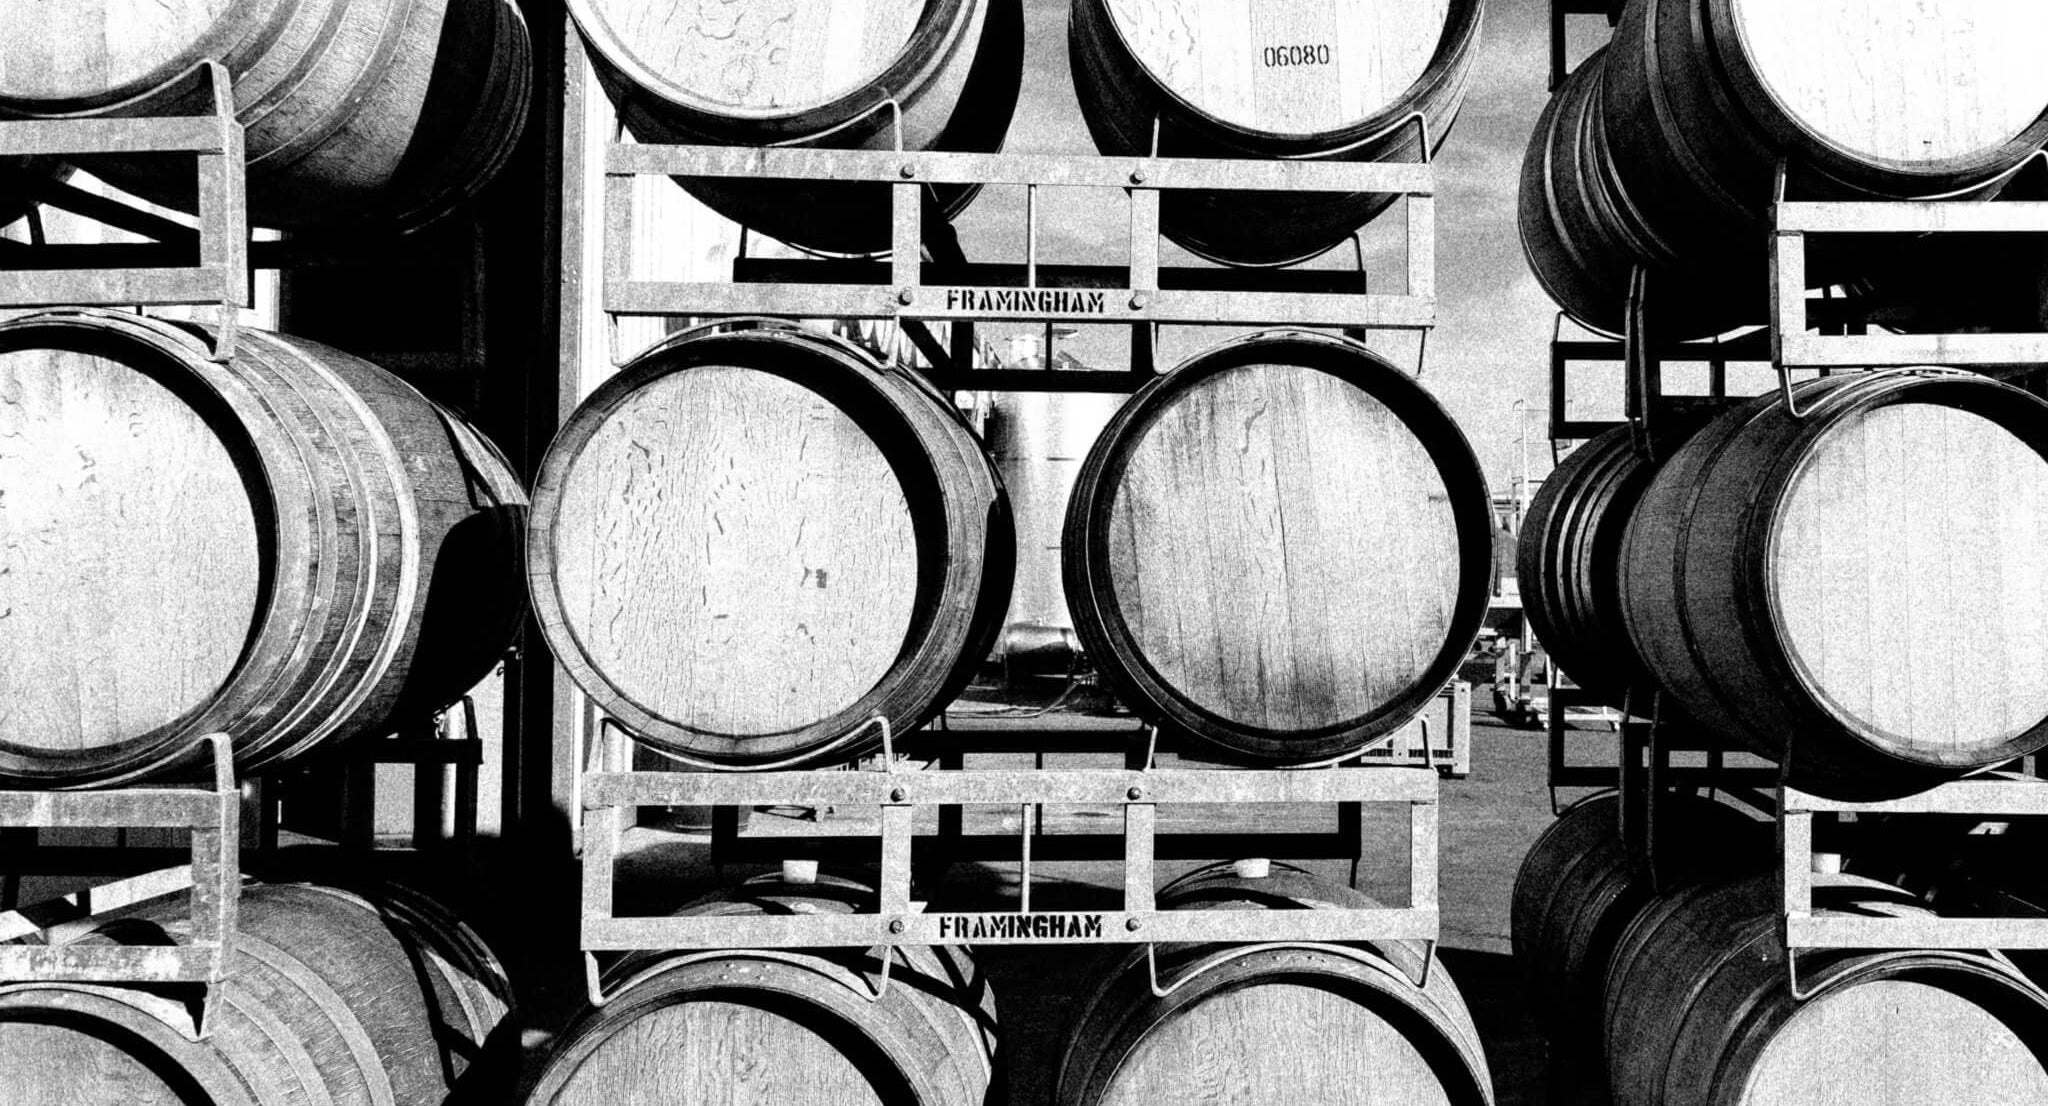 Framingham Wine Barrels